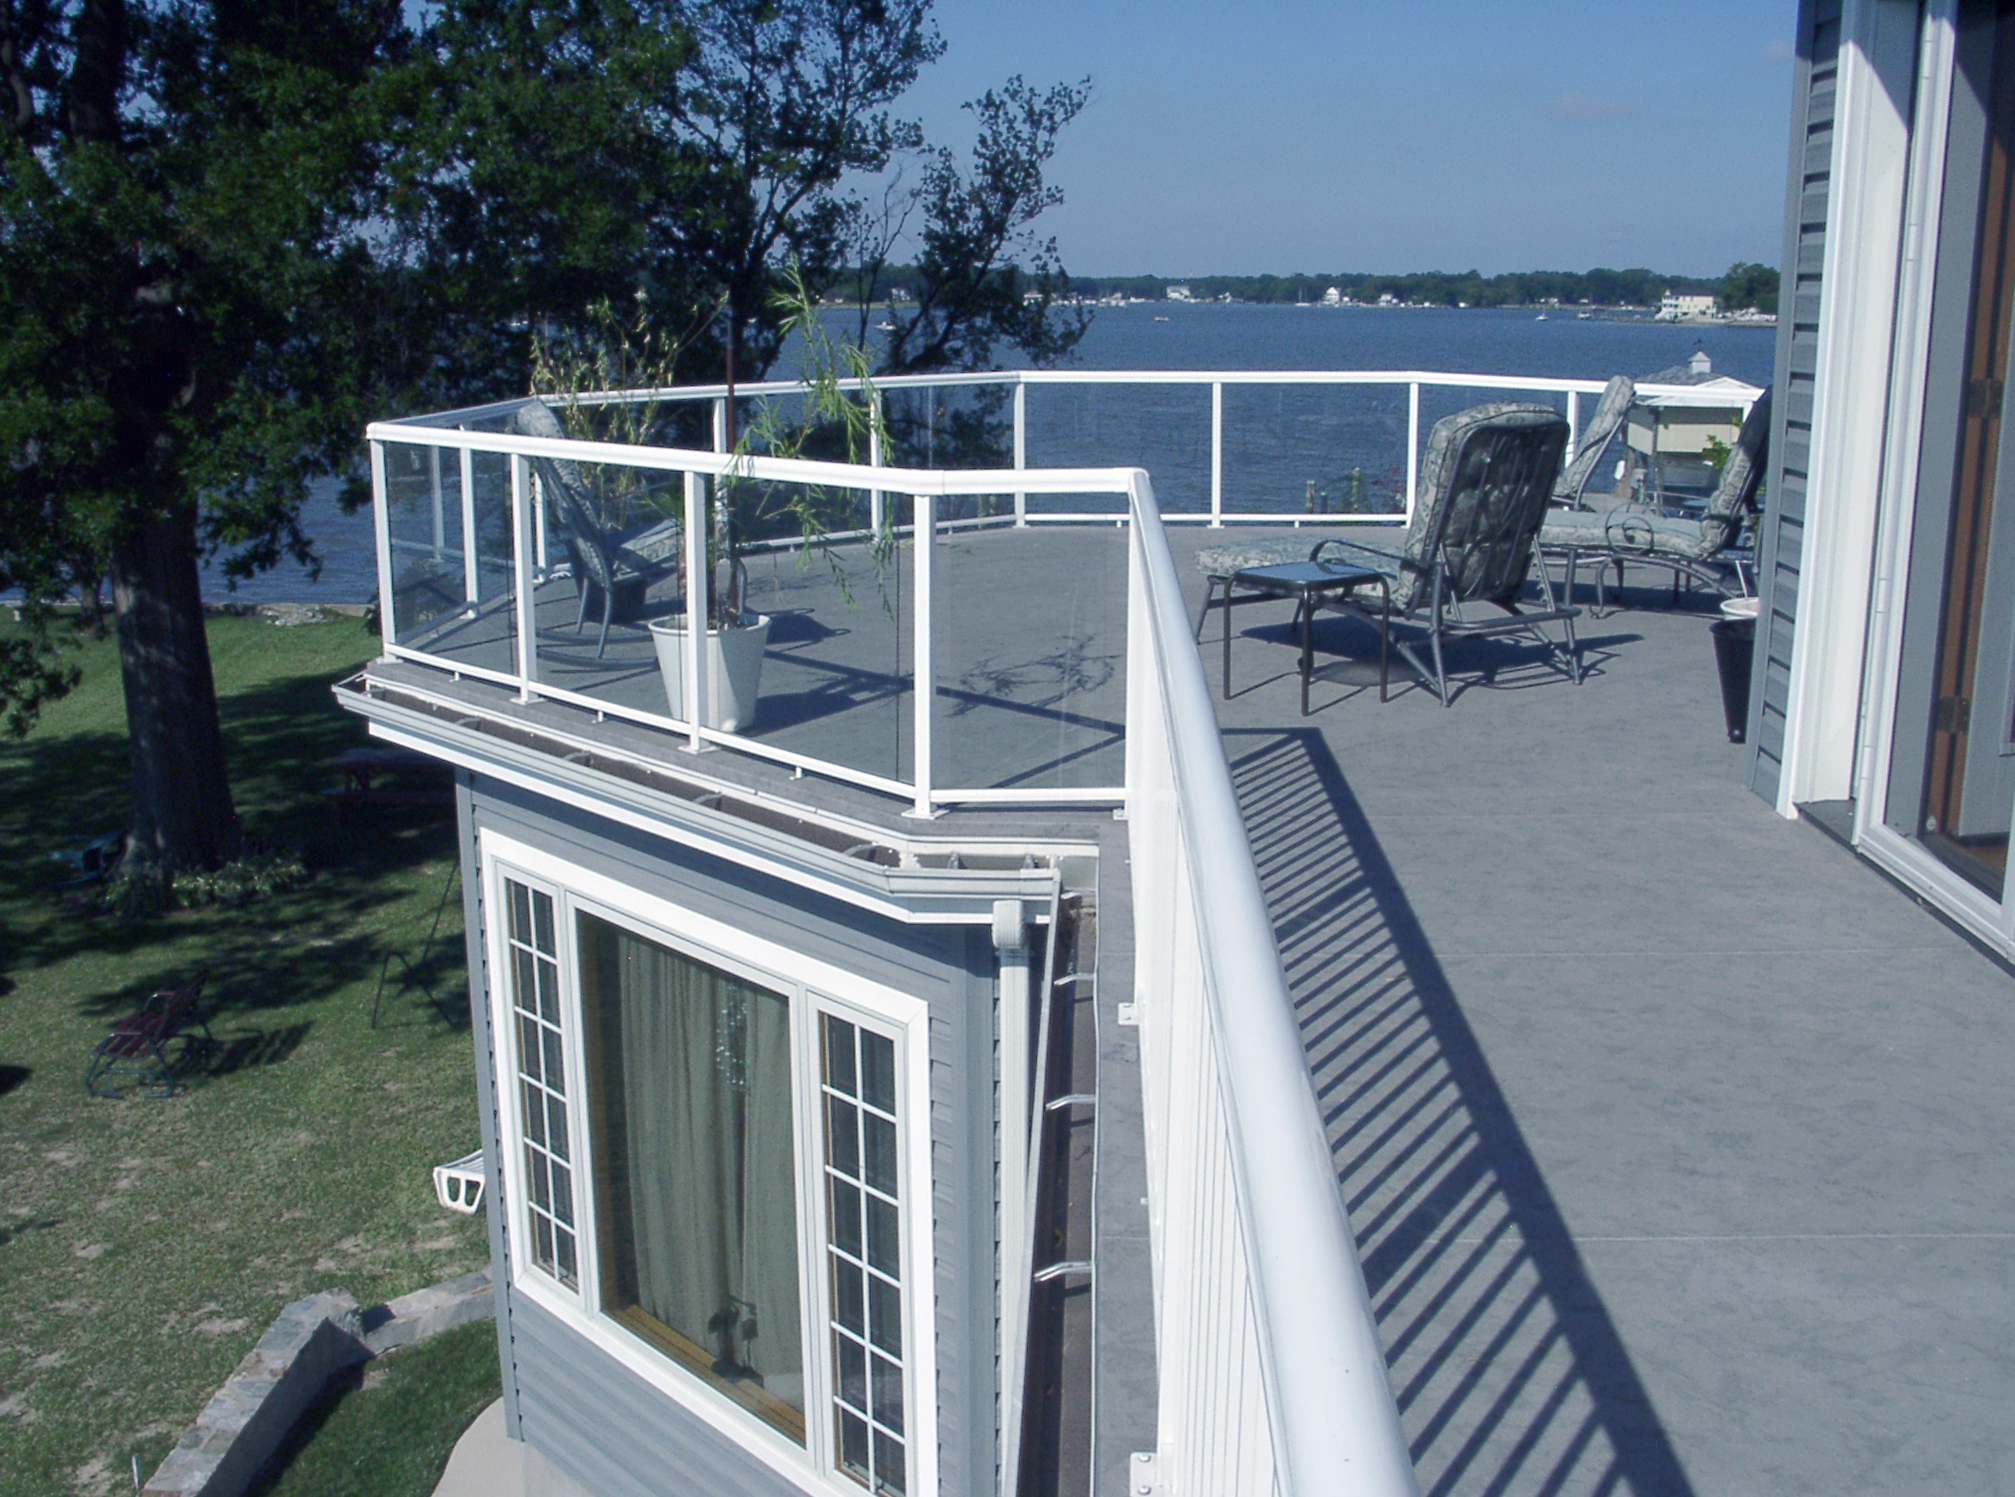 A new aspect of sustainable design is to consider the potential for deconstruction. A walkable deck and railing assembly that can eventually be dismantled and used anew will reduce environmental impact.